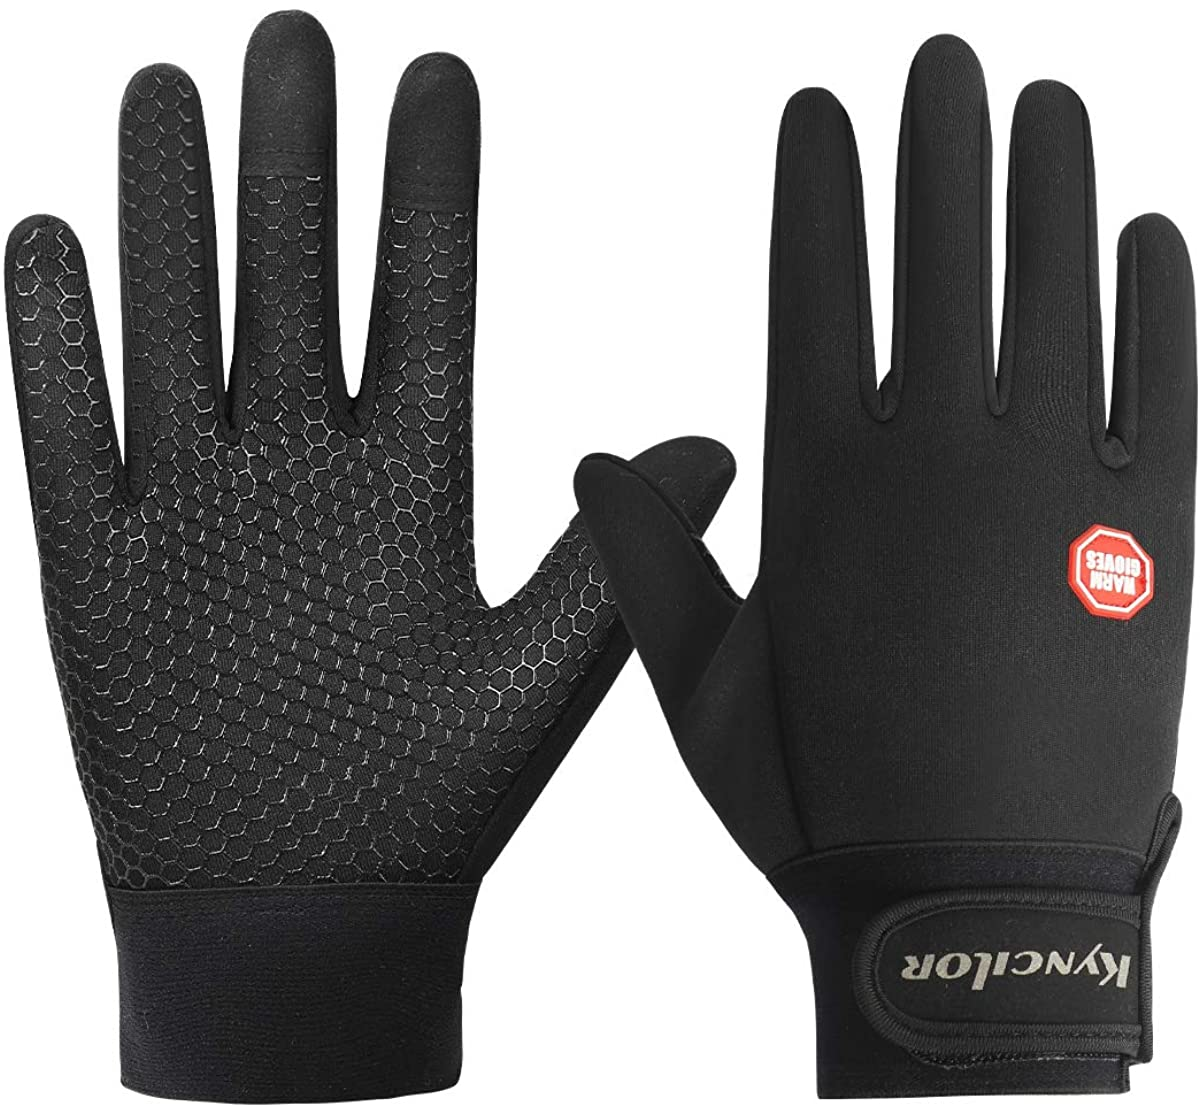 sunifier windproof and waterproof warm gloves for cycling